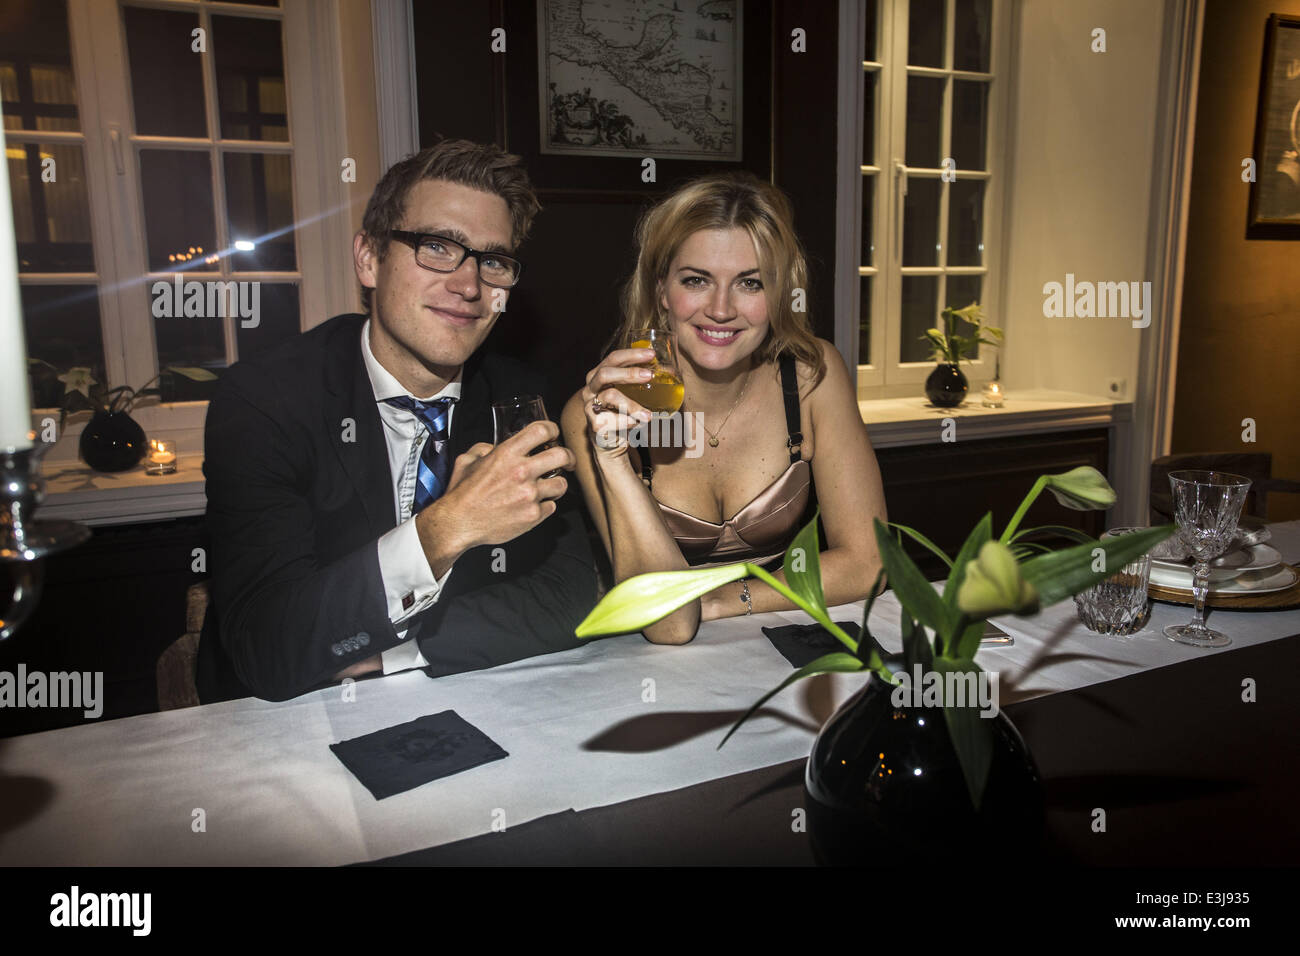 Launch Party Of Zacapa Room Bar At Hohe Bleichen Street Featuring Stock Photo Alamy